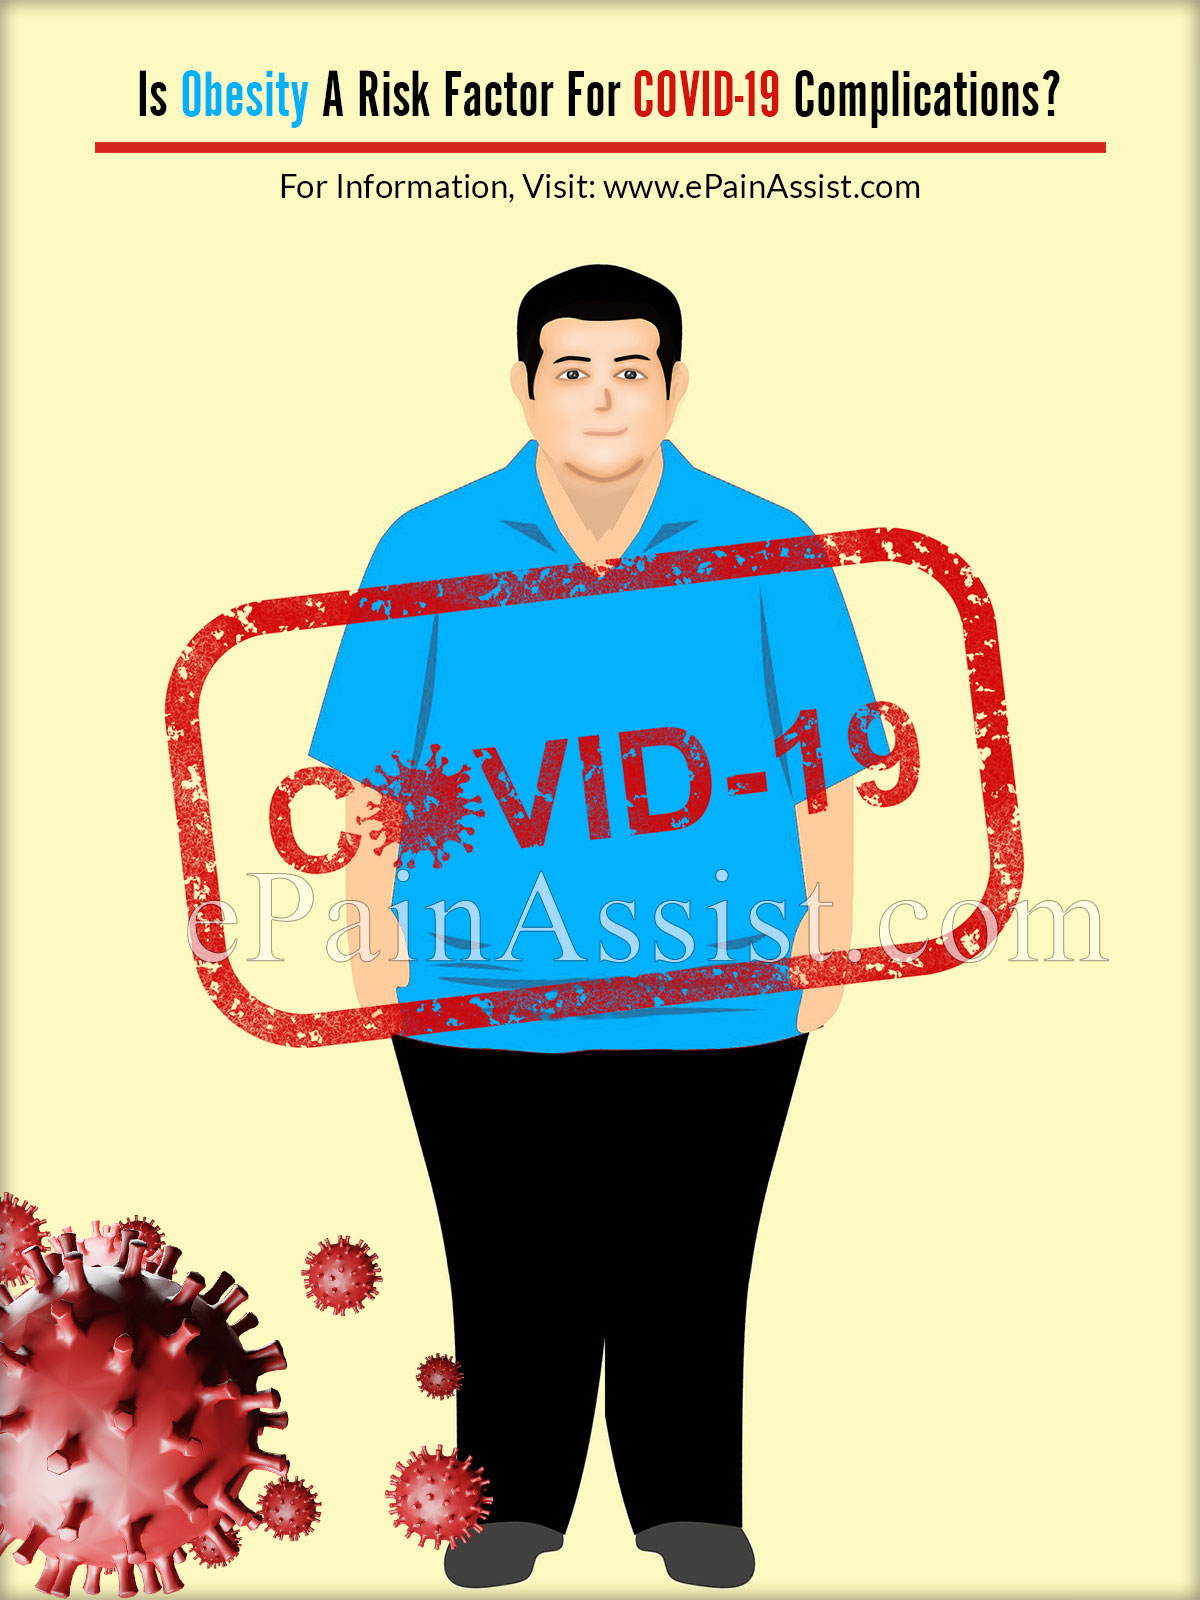 Is Obesity A Risk Factor For COVID-19 Complications?